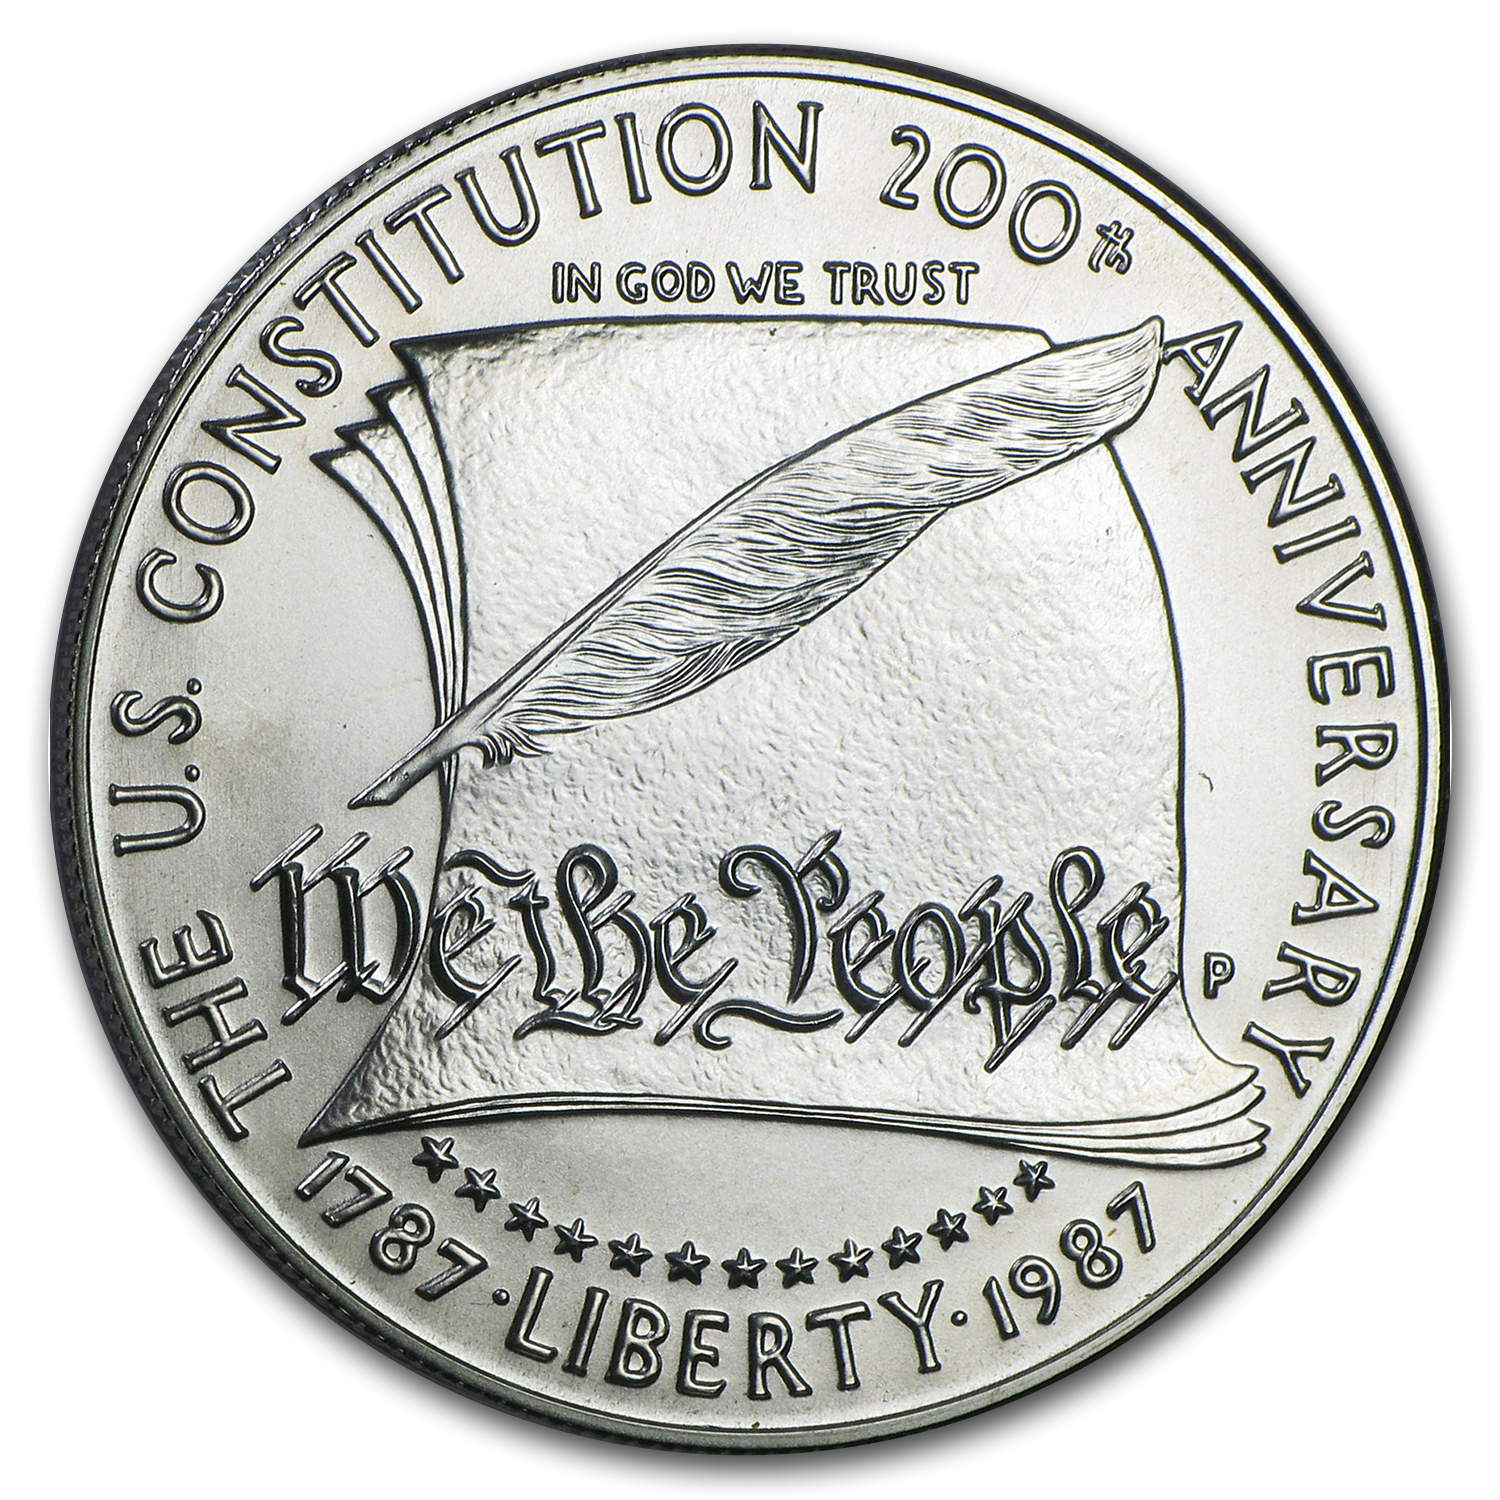 1987-S Constitution $1 Silver Commem Proof (w/Box & COA)